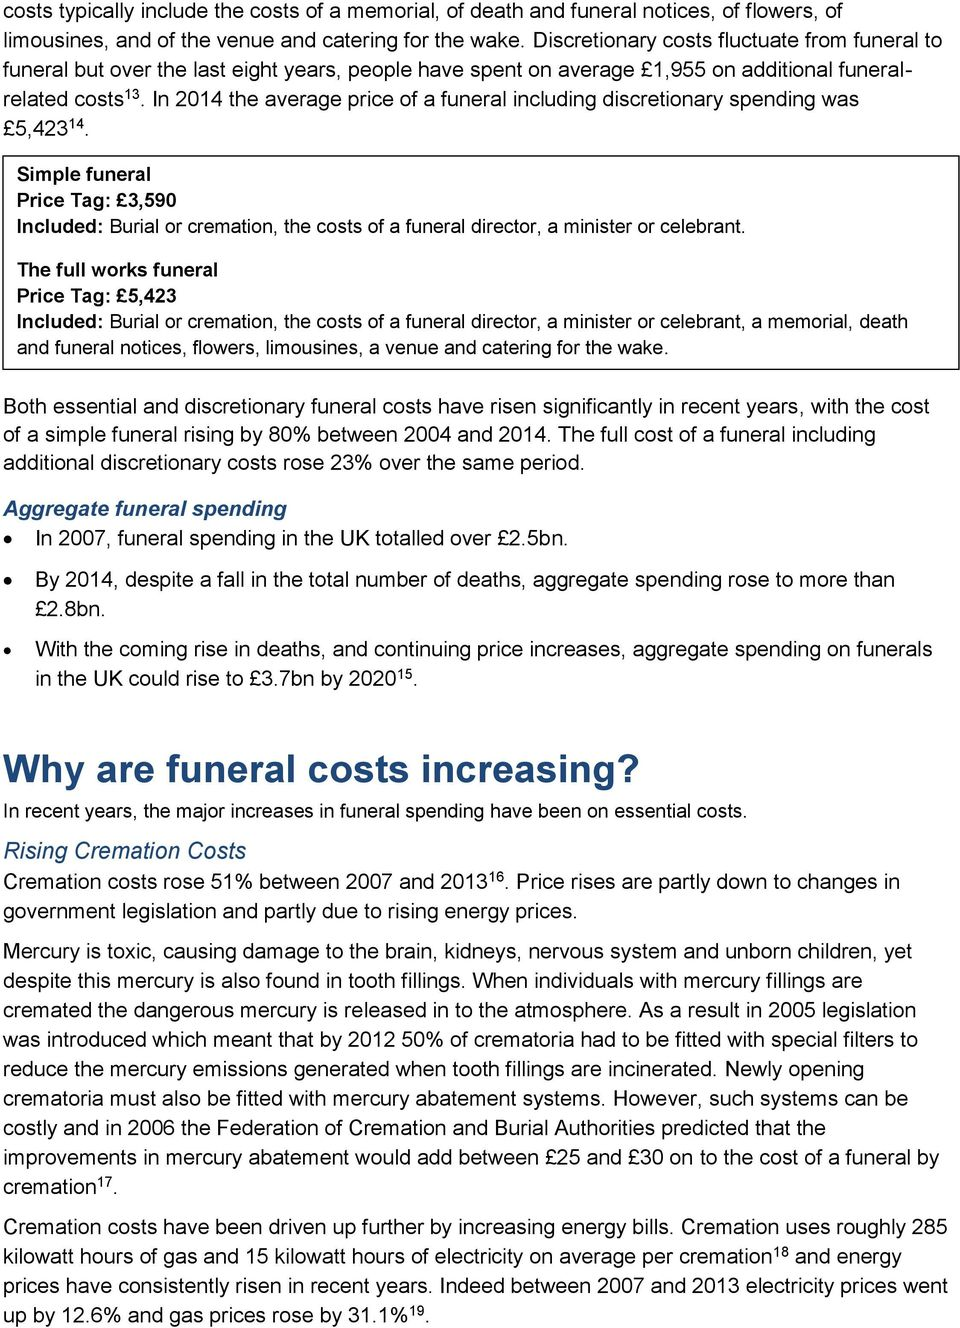 In 2014 the average price of a funeral including discretionary spending was 5,423 14.